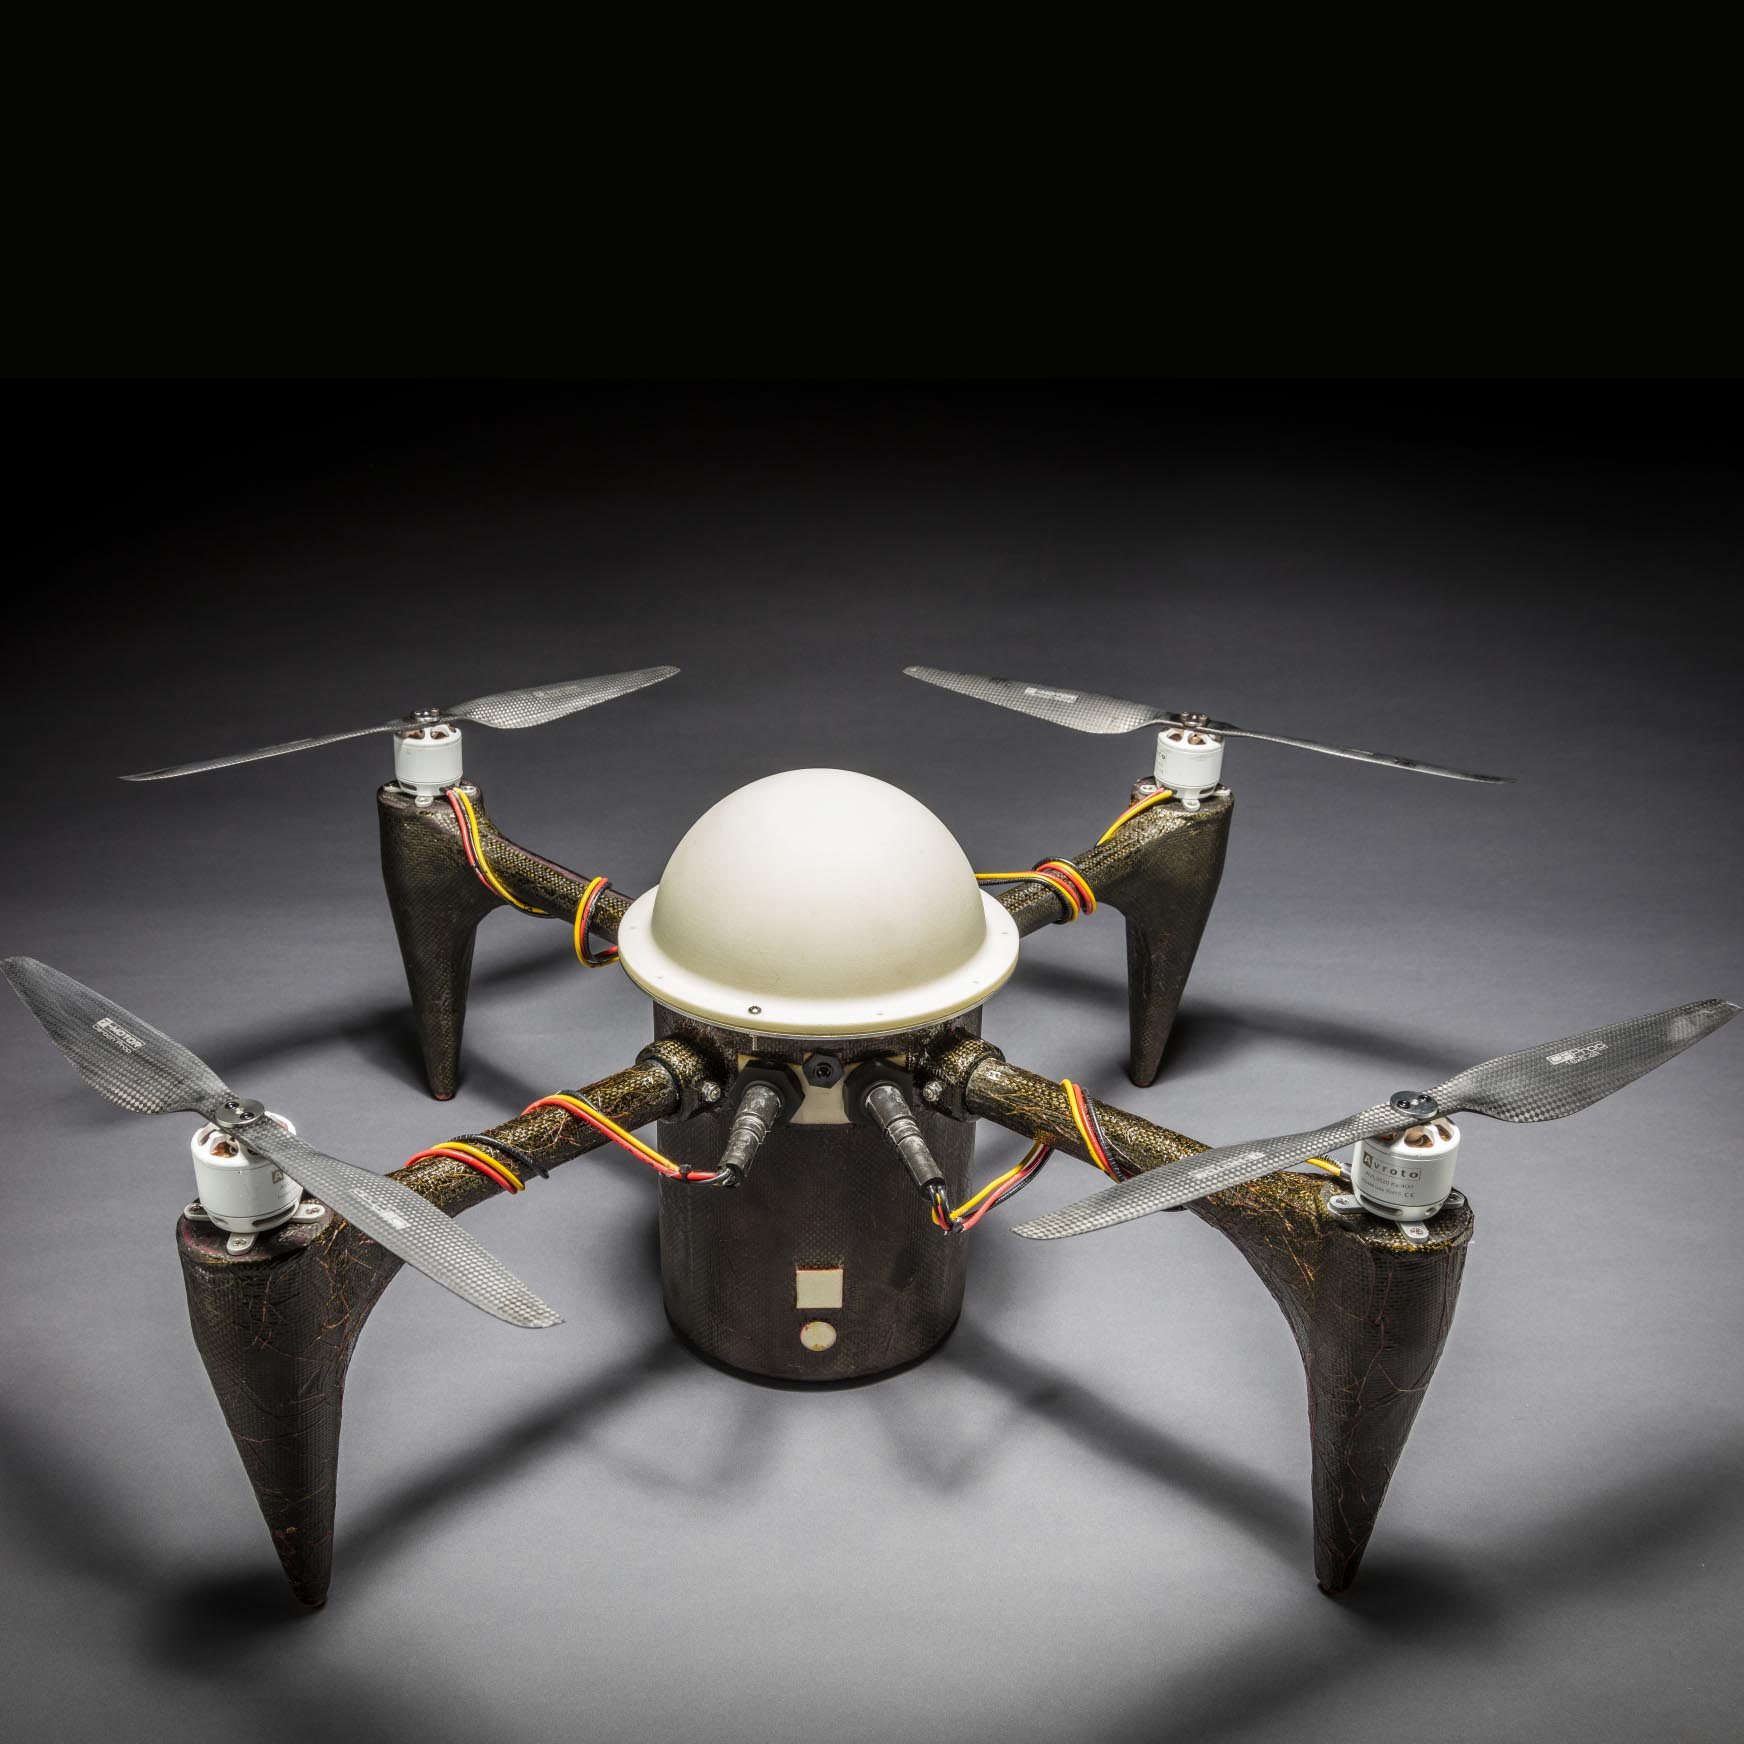 A 3D Printed Drone That Launches From Underwater